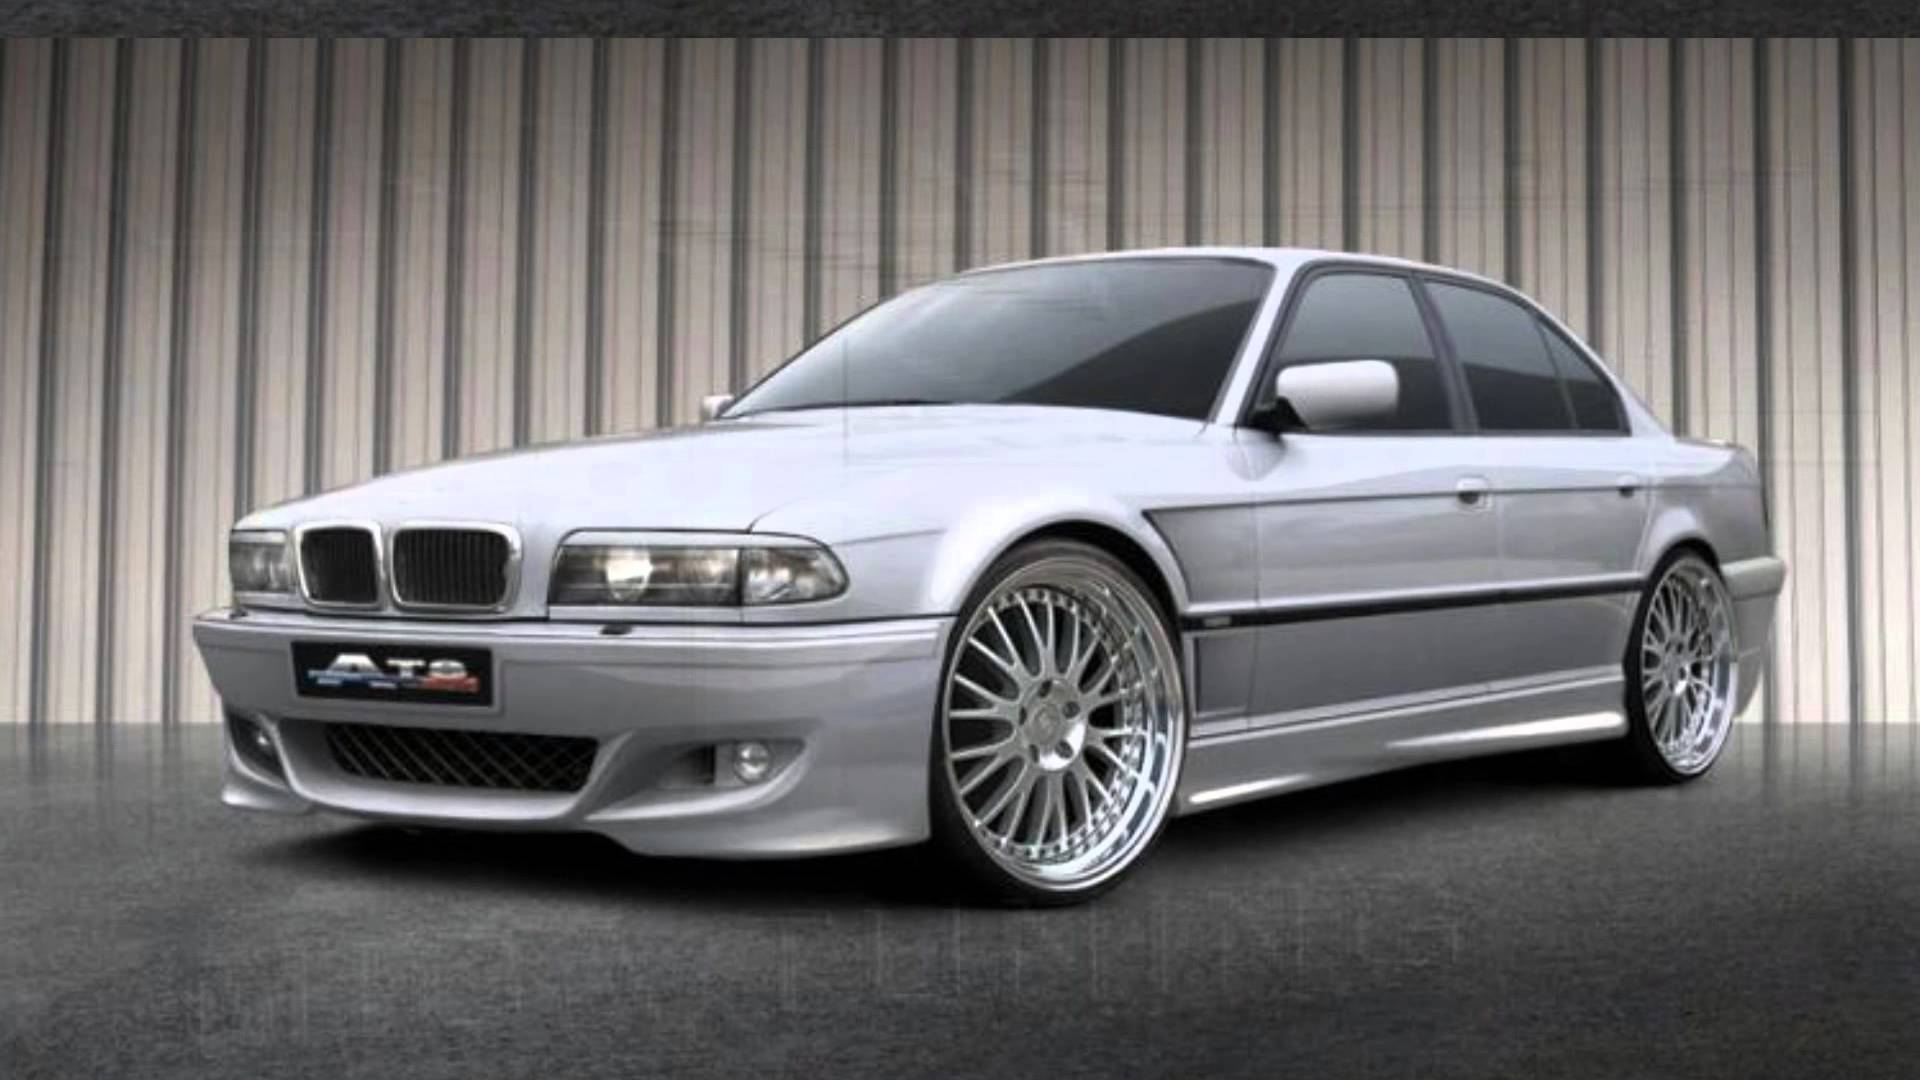 2000 bmw 7er e38 pictures information and specs auto. Black Bedroom Furniture Sets. Home Design Ideas